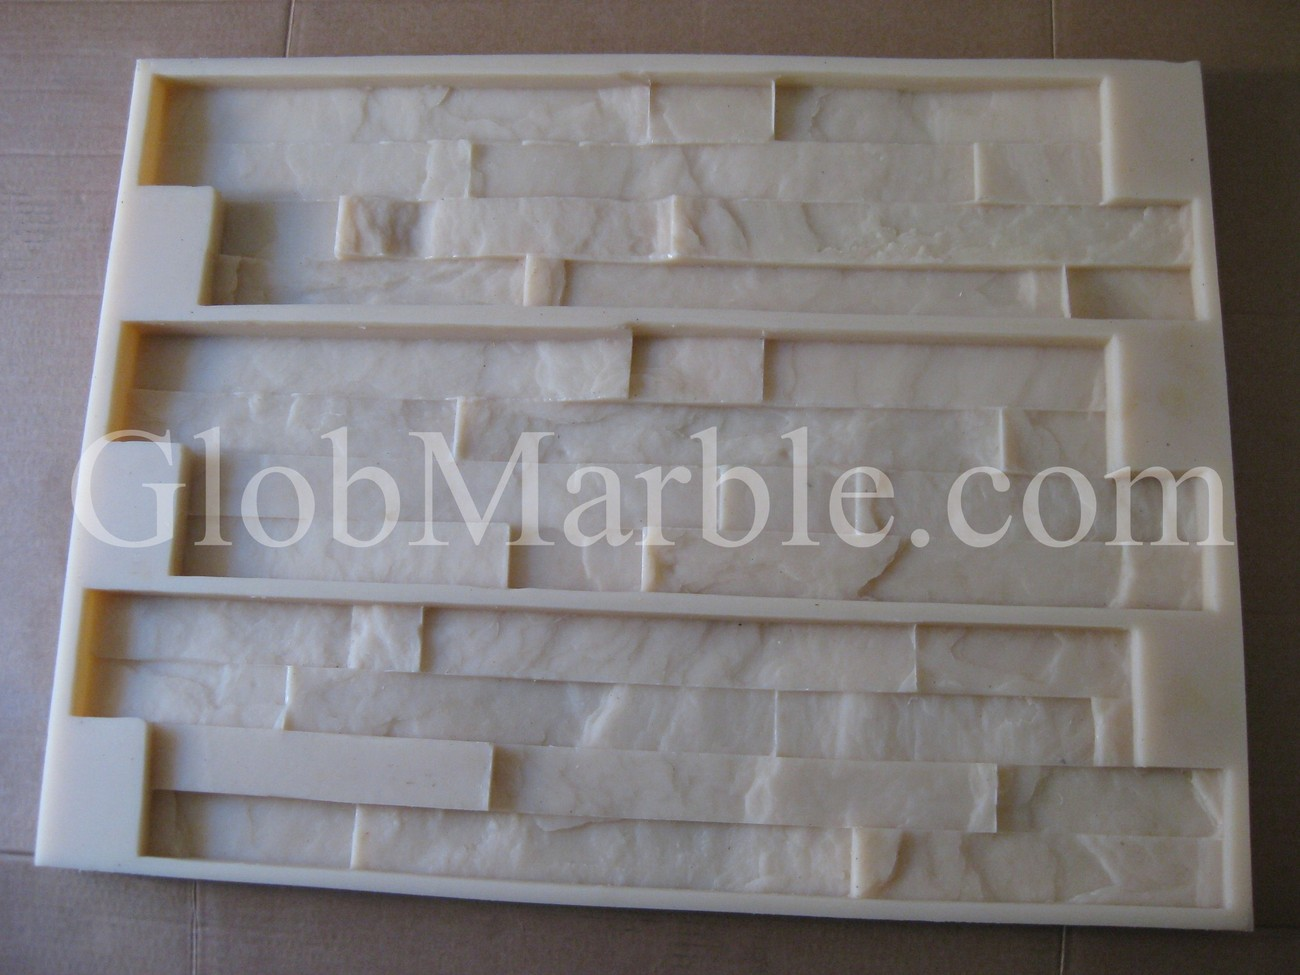 Primary image for CONCRETE MOLD STONE, WALL VENEER PAVER. RUBBER MOLD